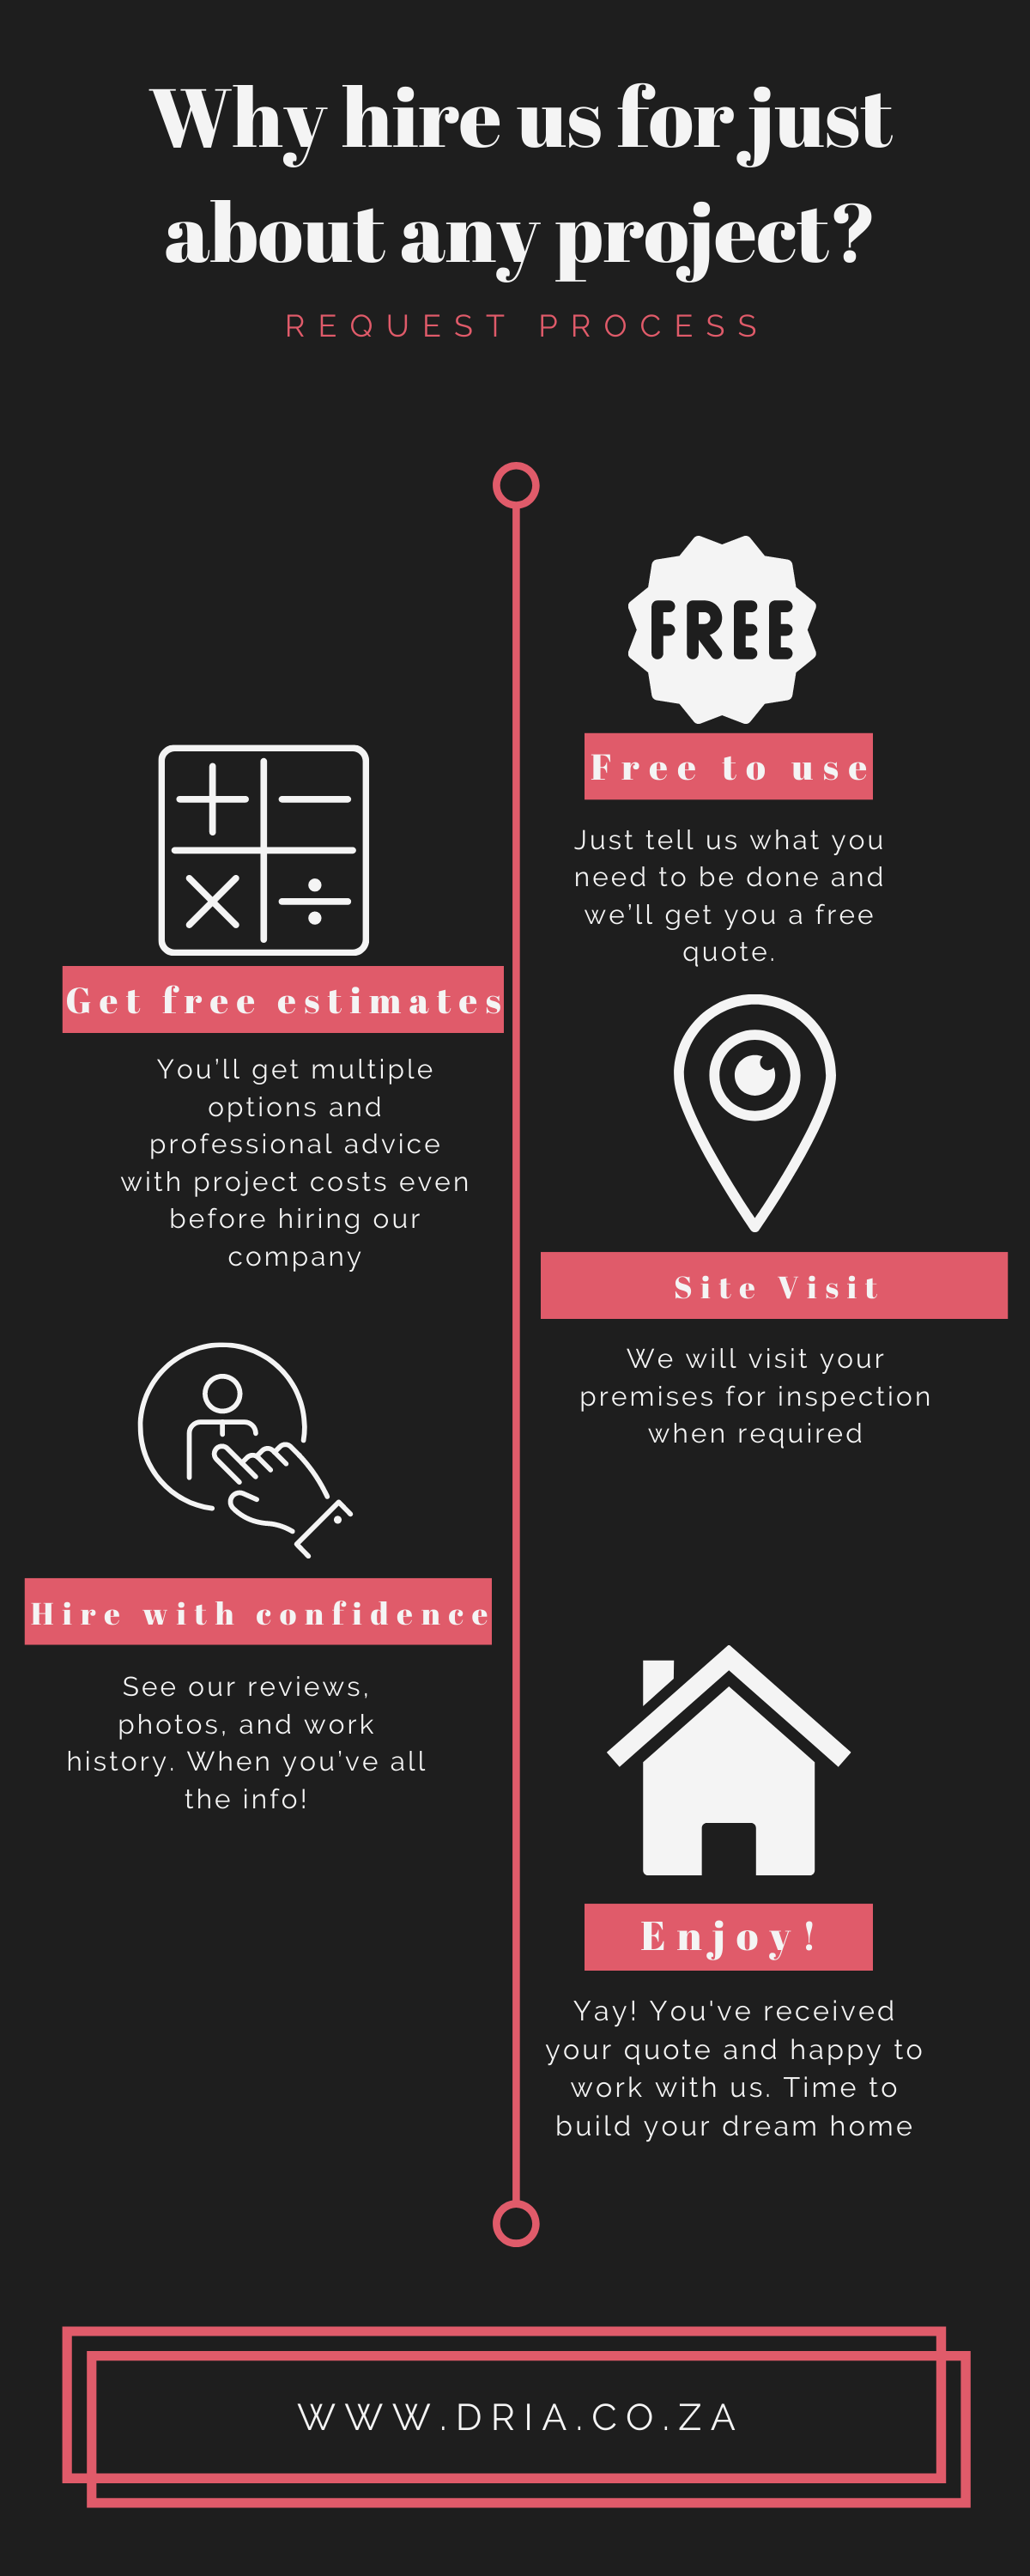 Why hire us for just about any project